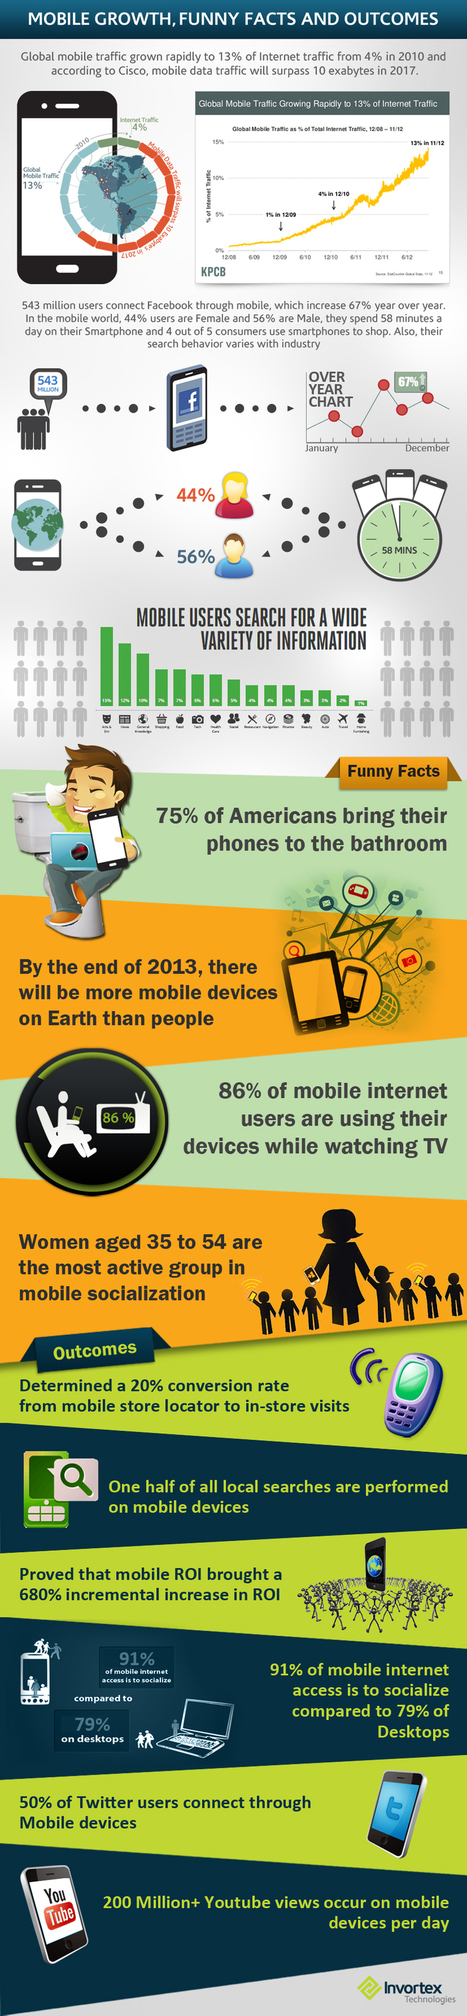 Mobile Devices and the Users Growth [Infographic] - Business 2 Community | 21st Century Leadership | Scoop.it